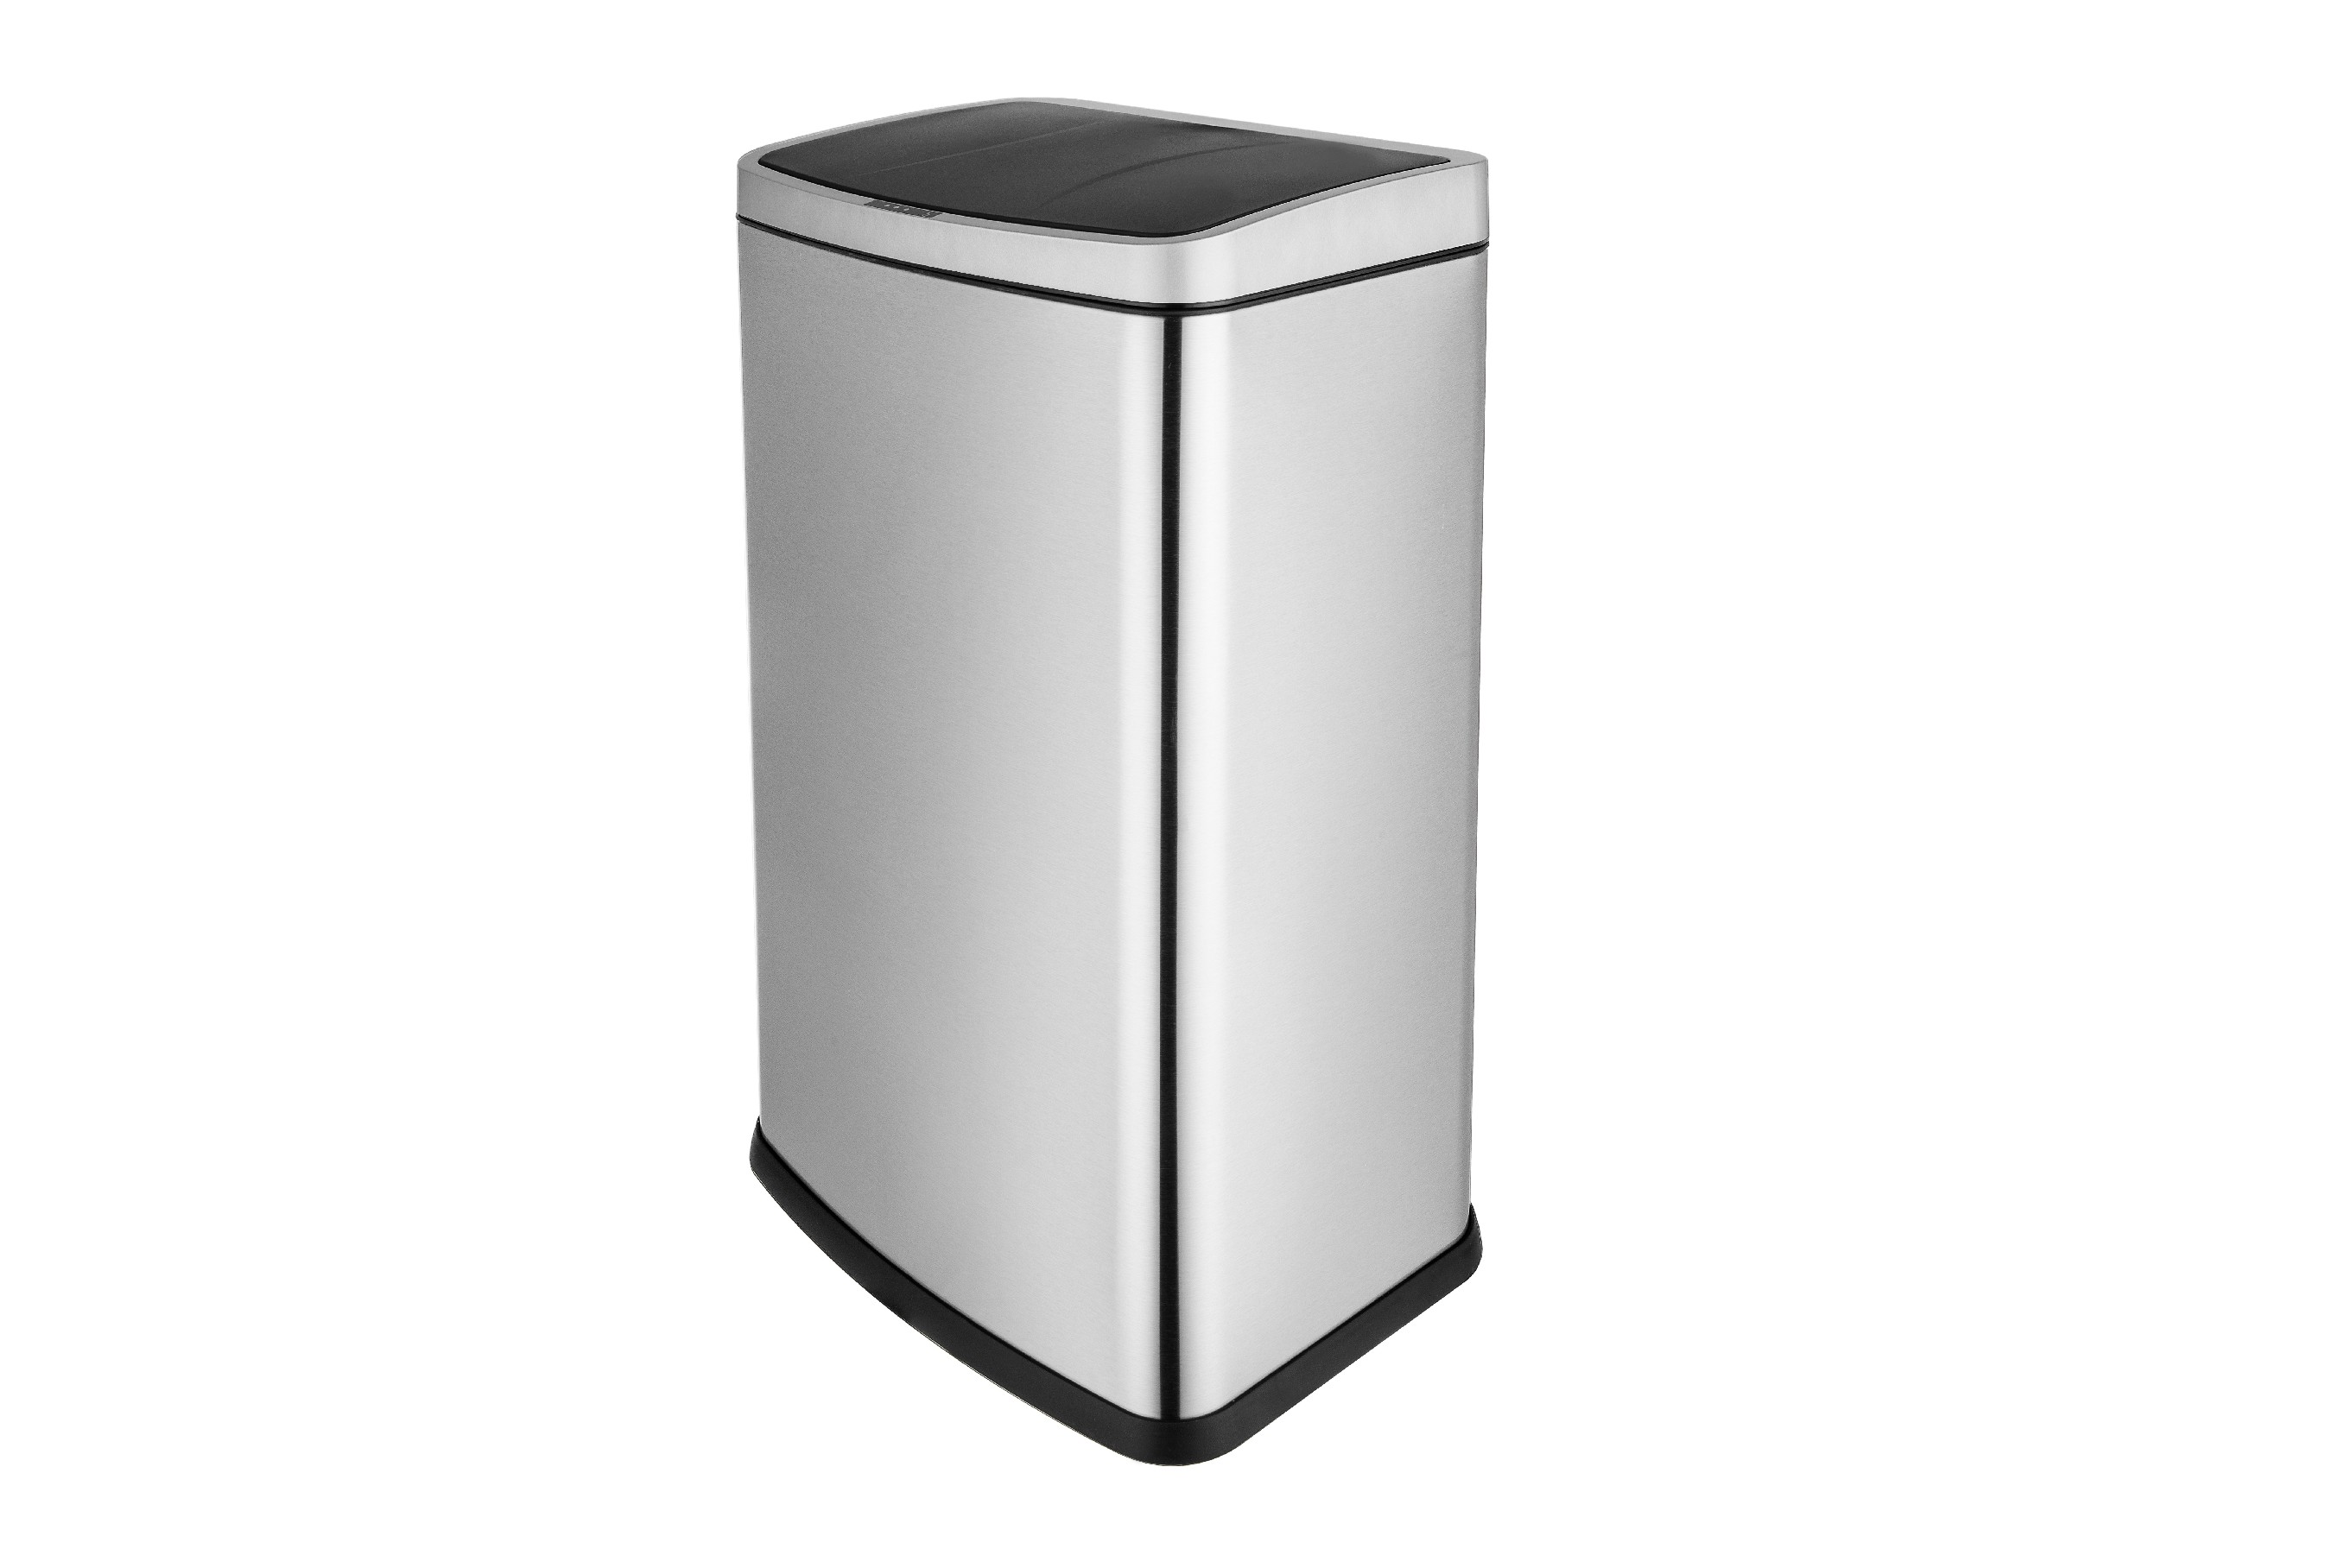 Smart Sensor Trash Can Touchness Household Dustbin Stainless Steel With Anti Finger Print Waste Bins Wide Open Kitchen Trash Bin